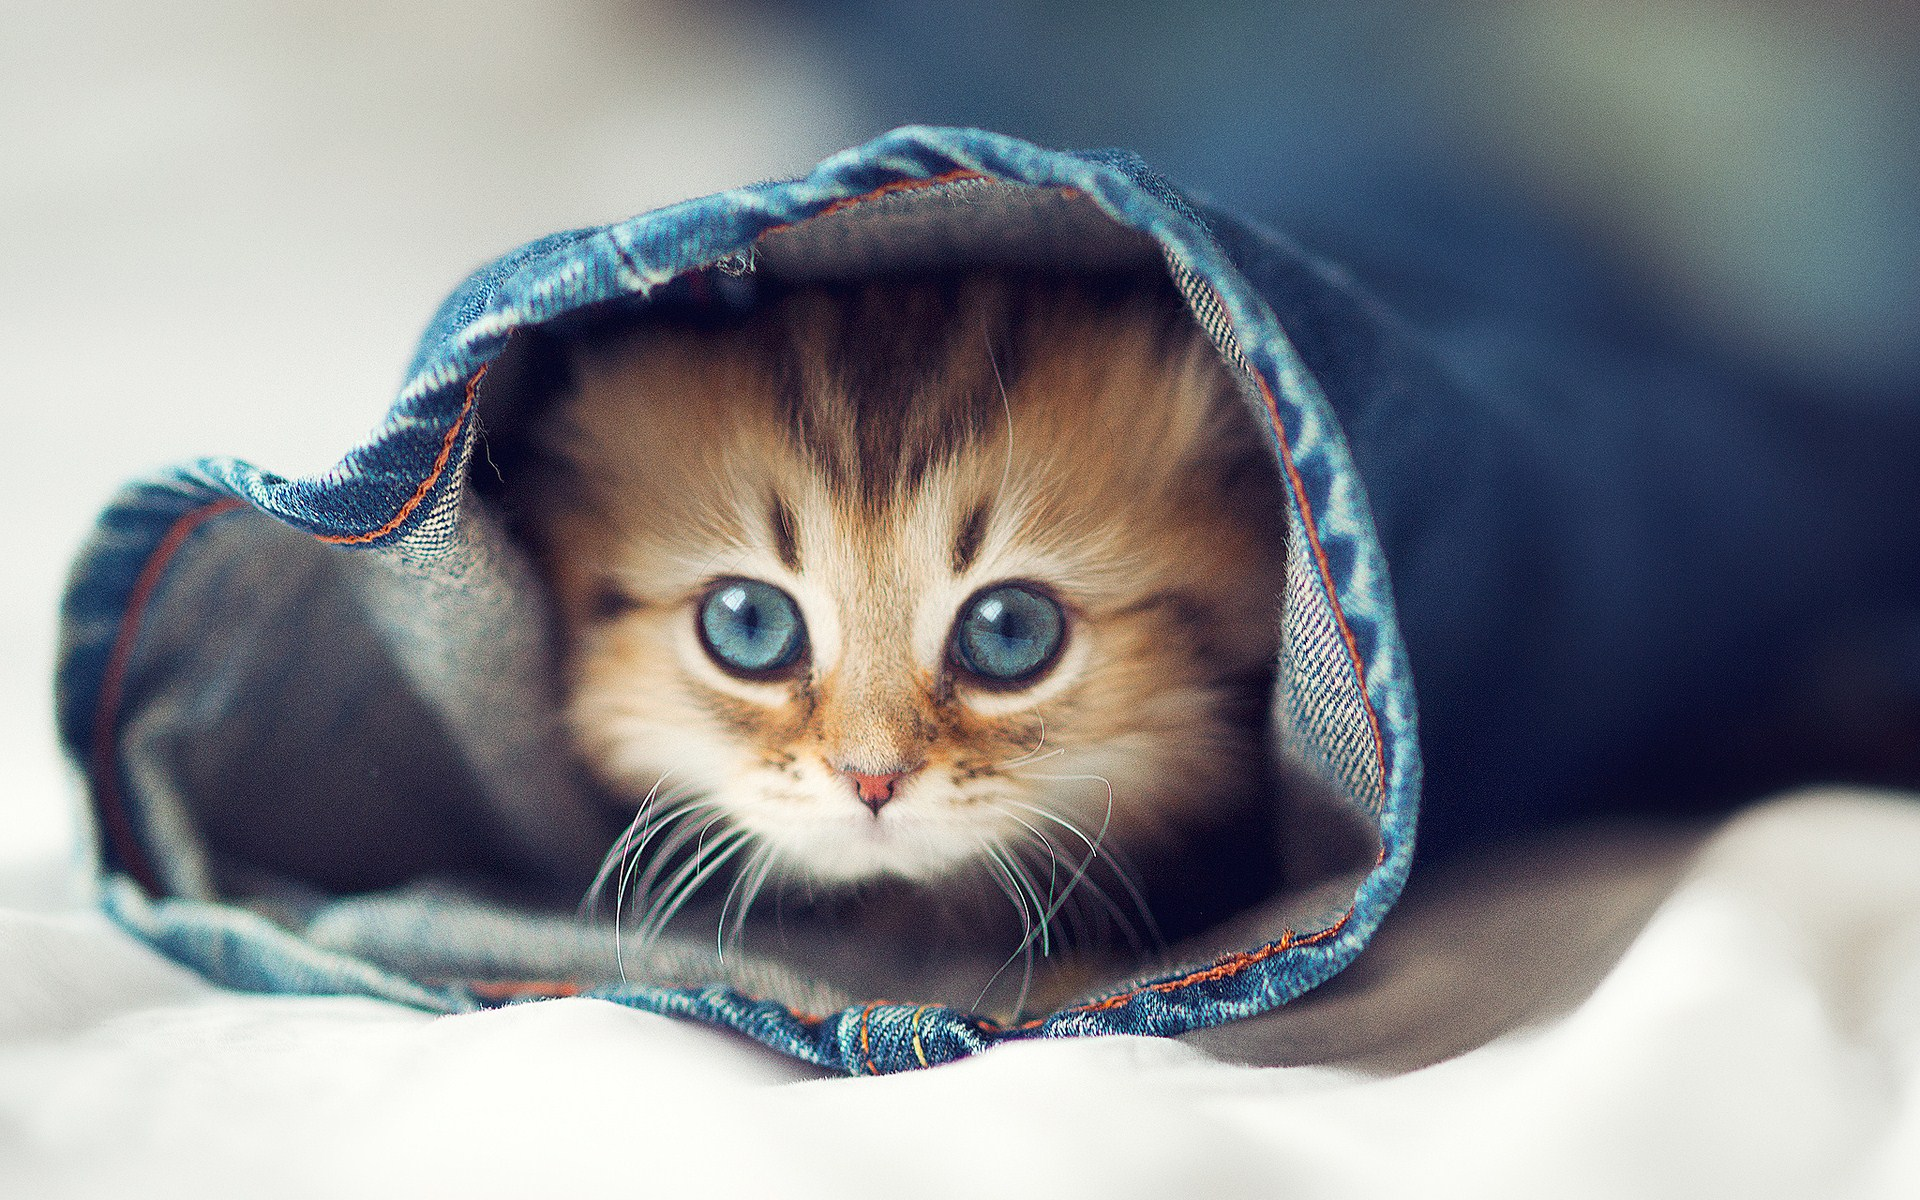 Cute Wallpapers for Background